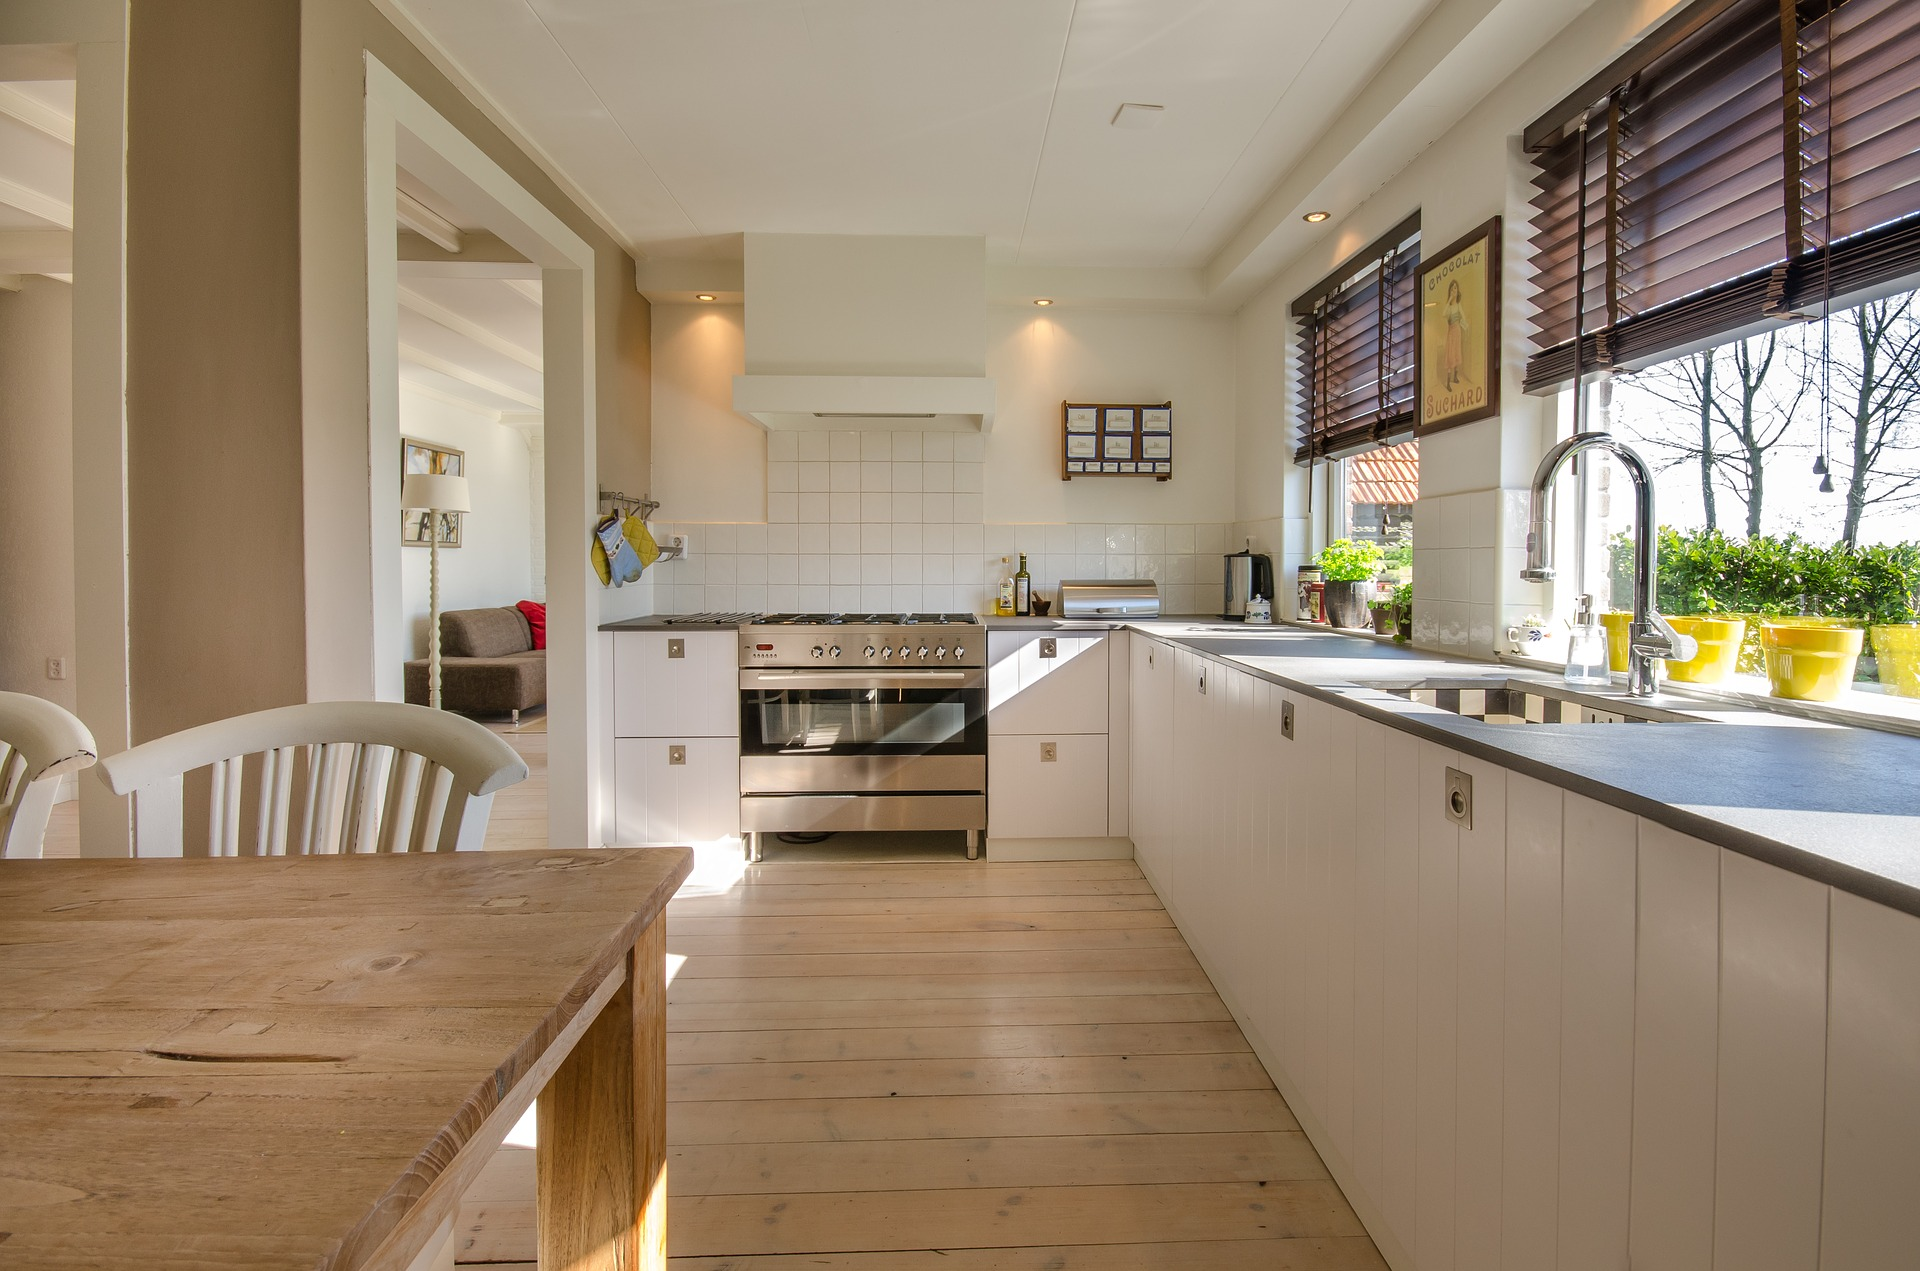 Make The Most Of Your Newport, Rhode Island Kitchen Space! 7 Time-tested Organizing Tips